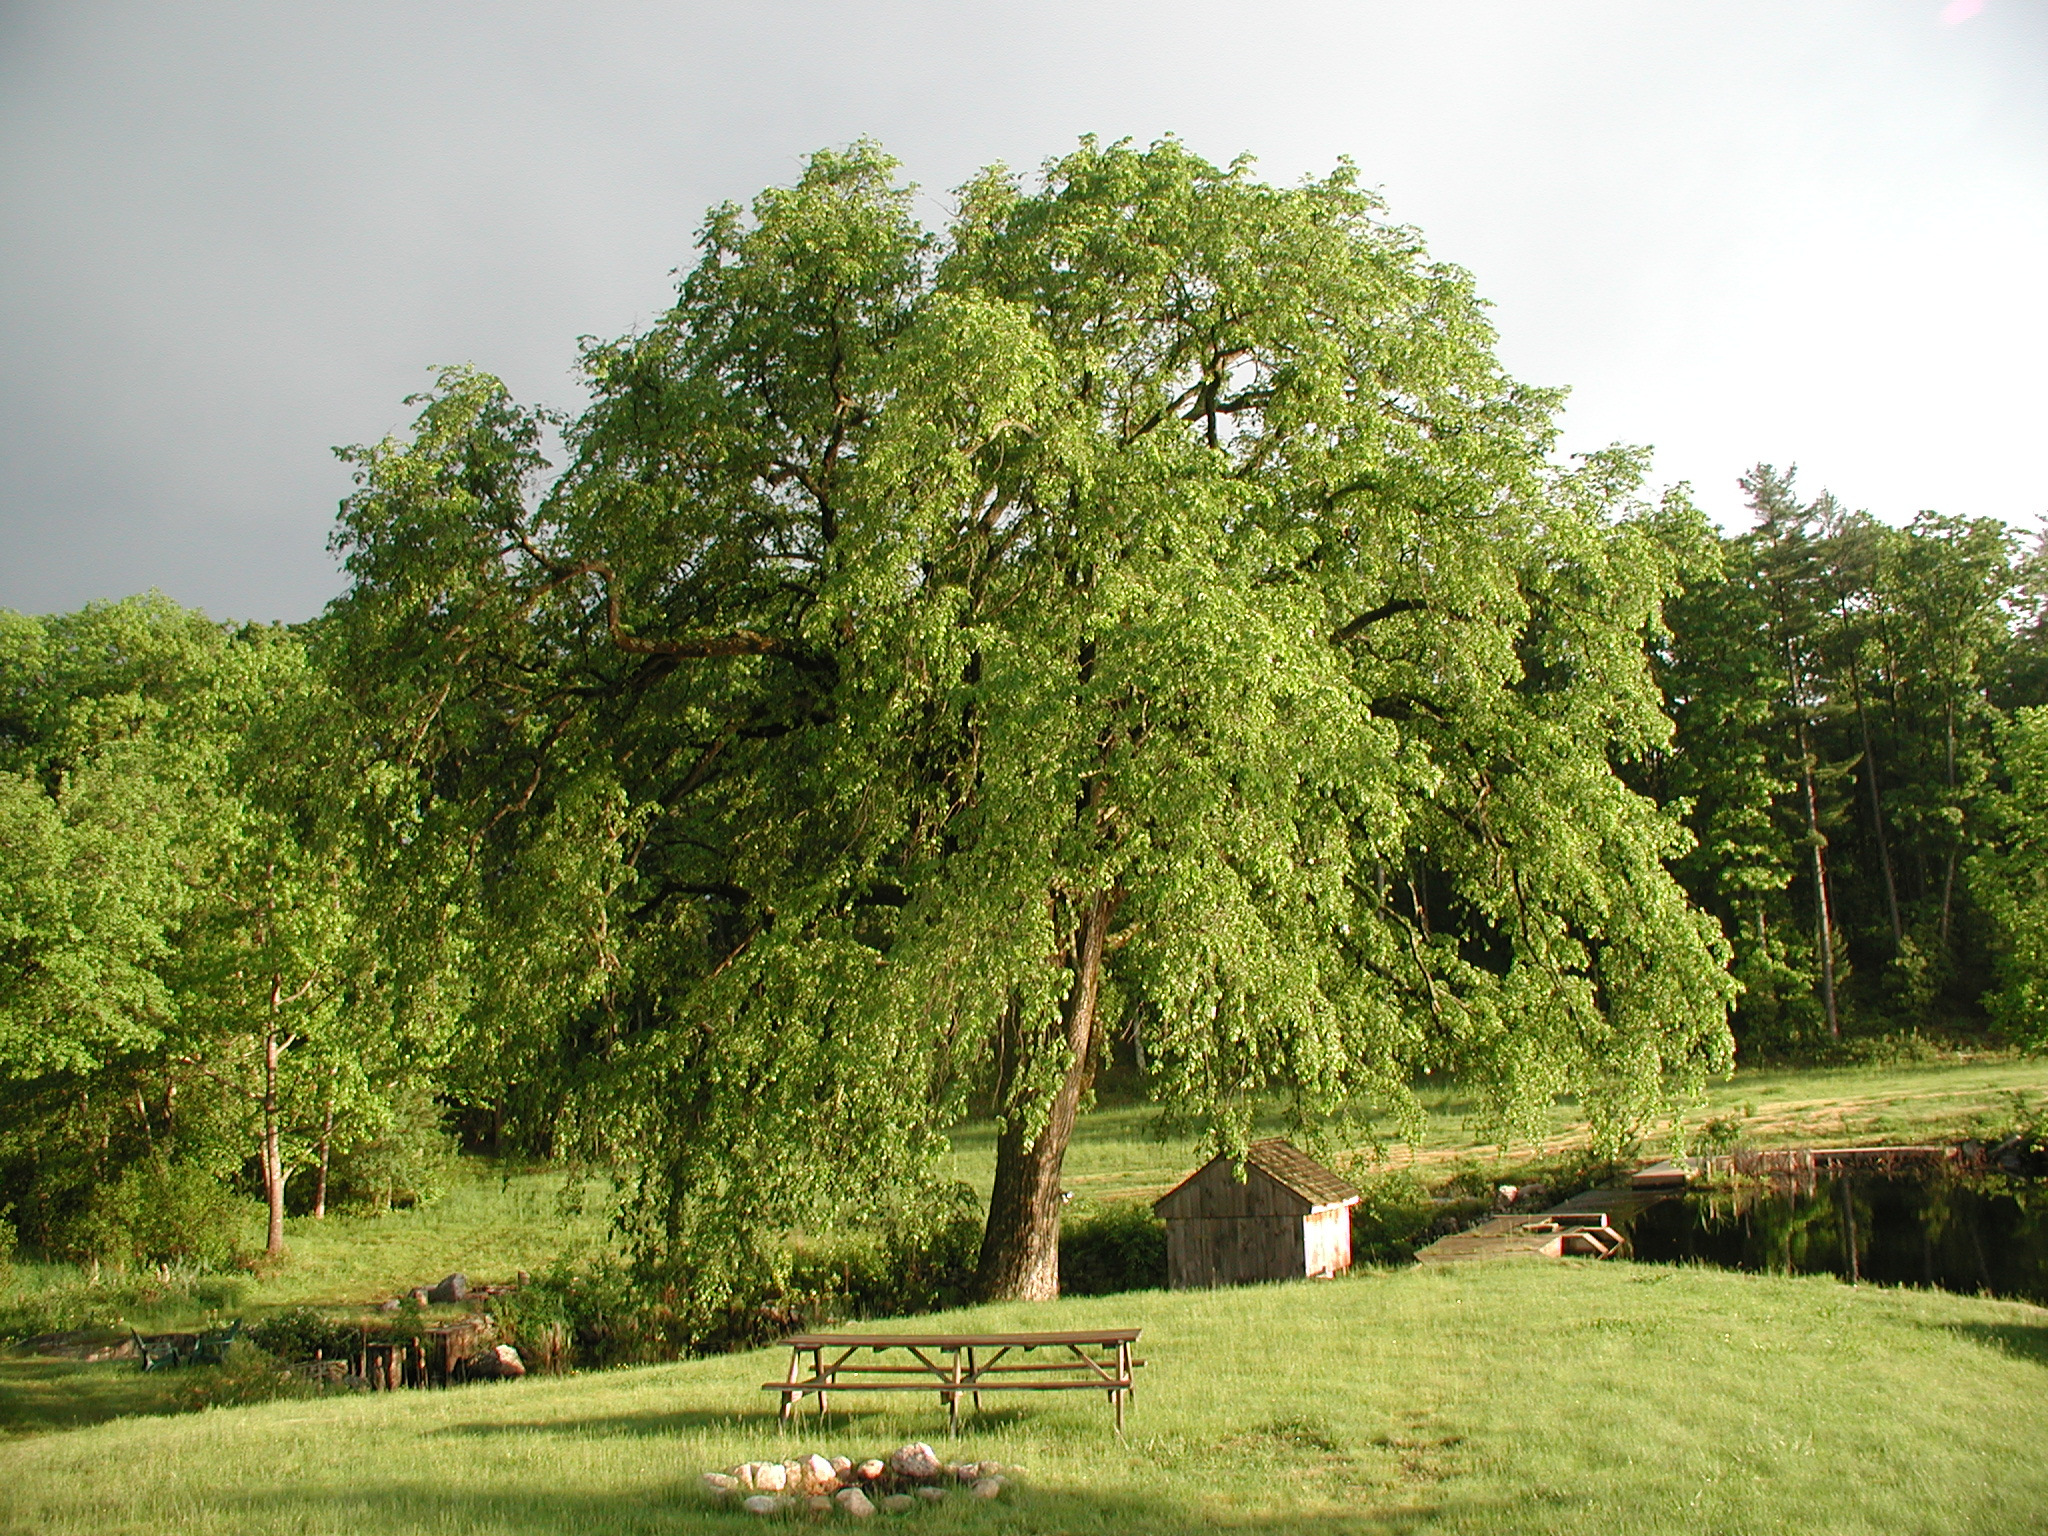 The Elm, May, 2002